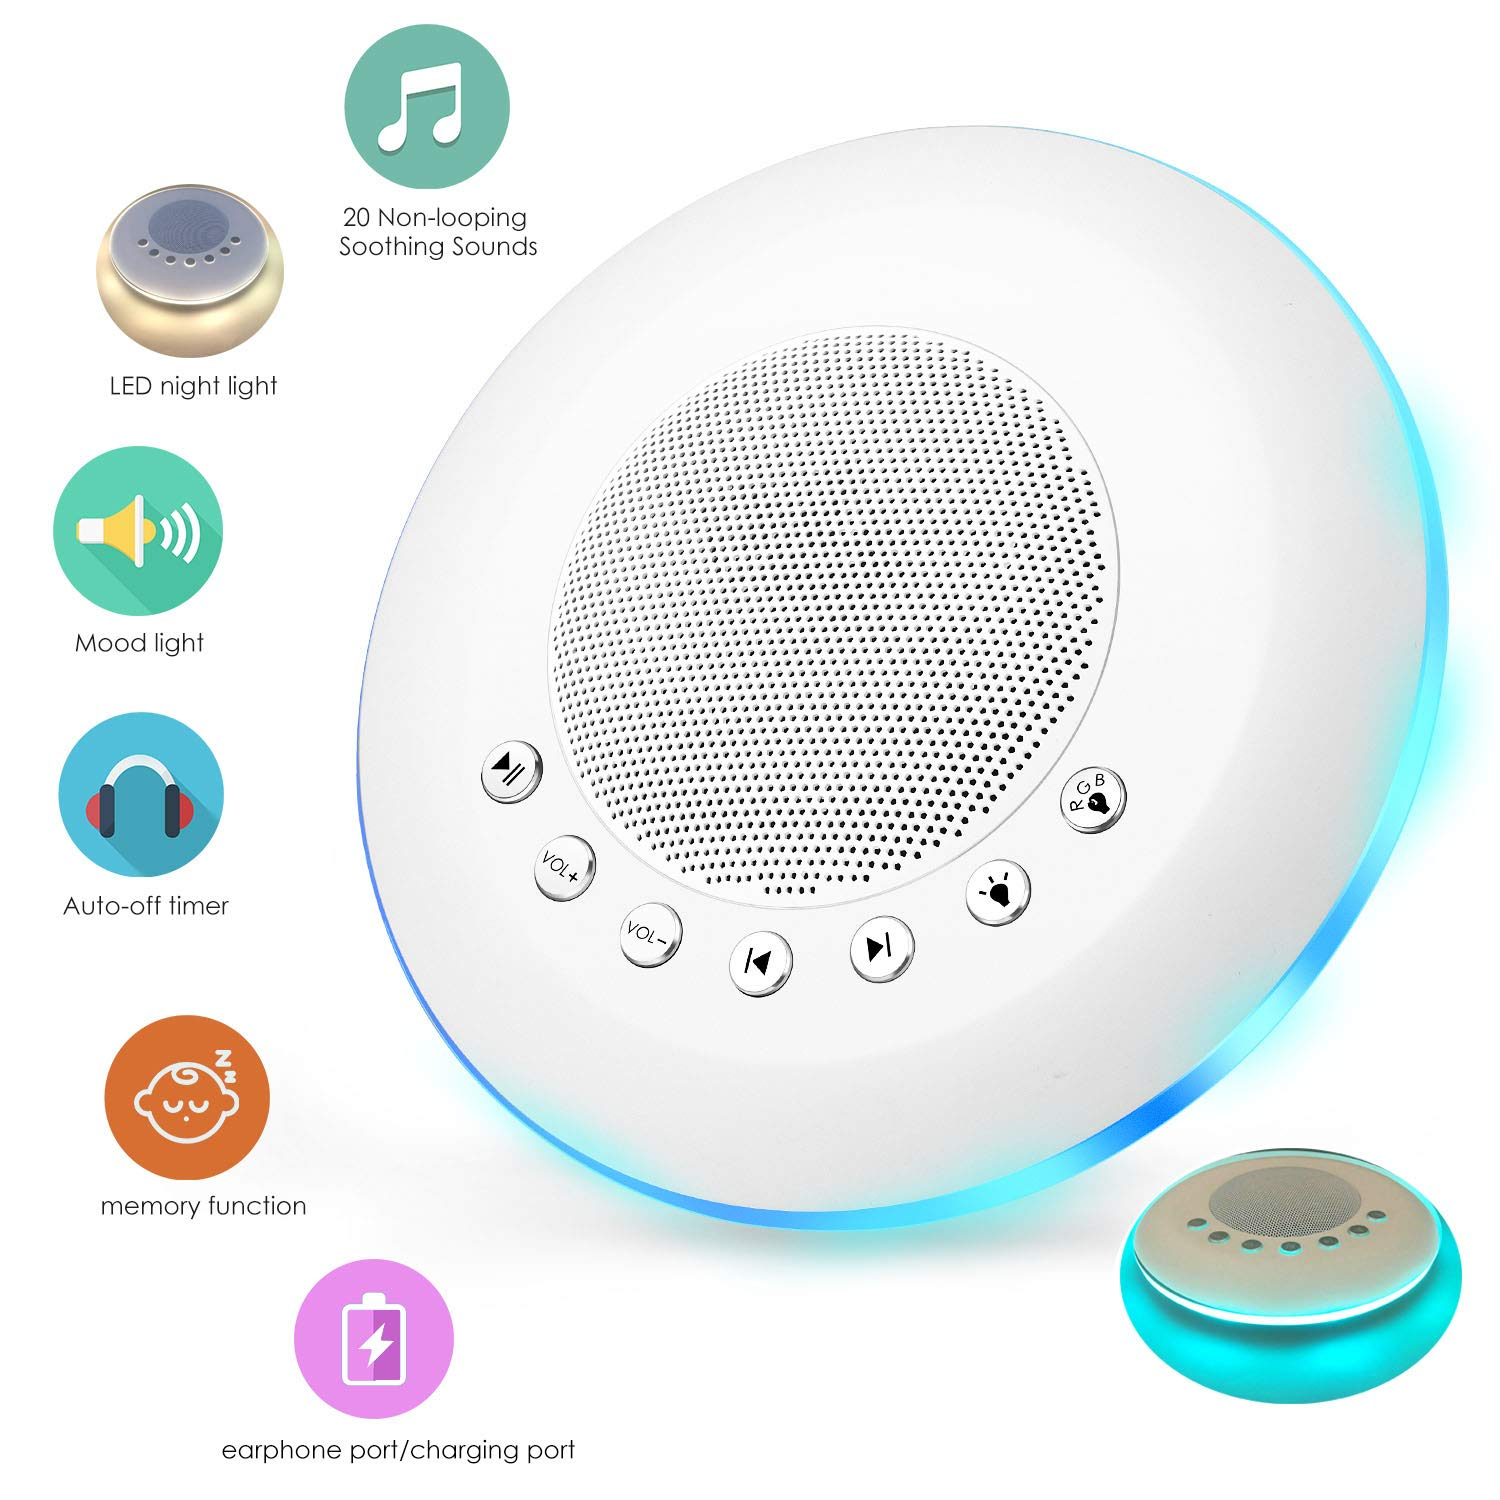 sendcool White Noise Sound Machine for Sleeping, 20 Non-Looping Soothing Sounds Lullaby Colorful Night Light Timing Baby Therapy Sound Machine, Auto-Off Timer Battery or USB Output Charger (White) by sendcool (Image #1)